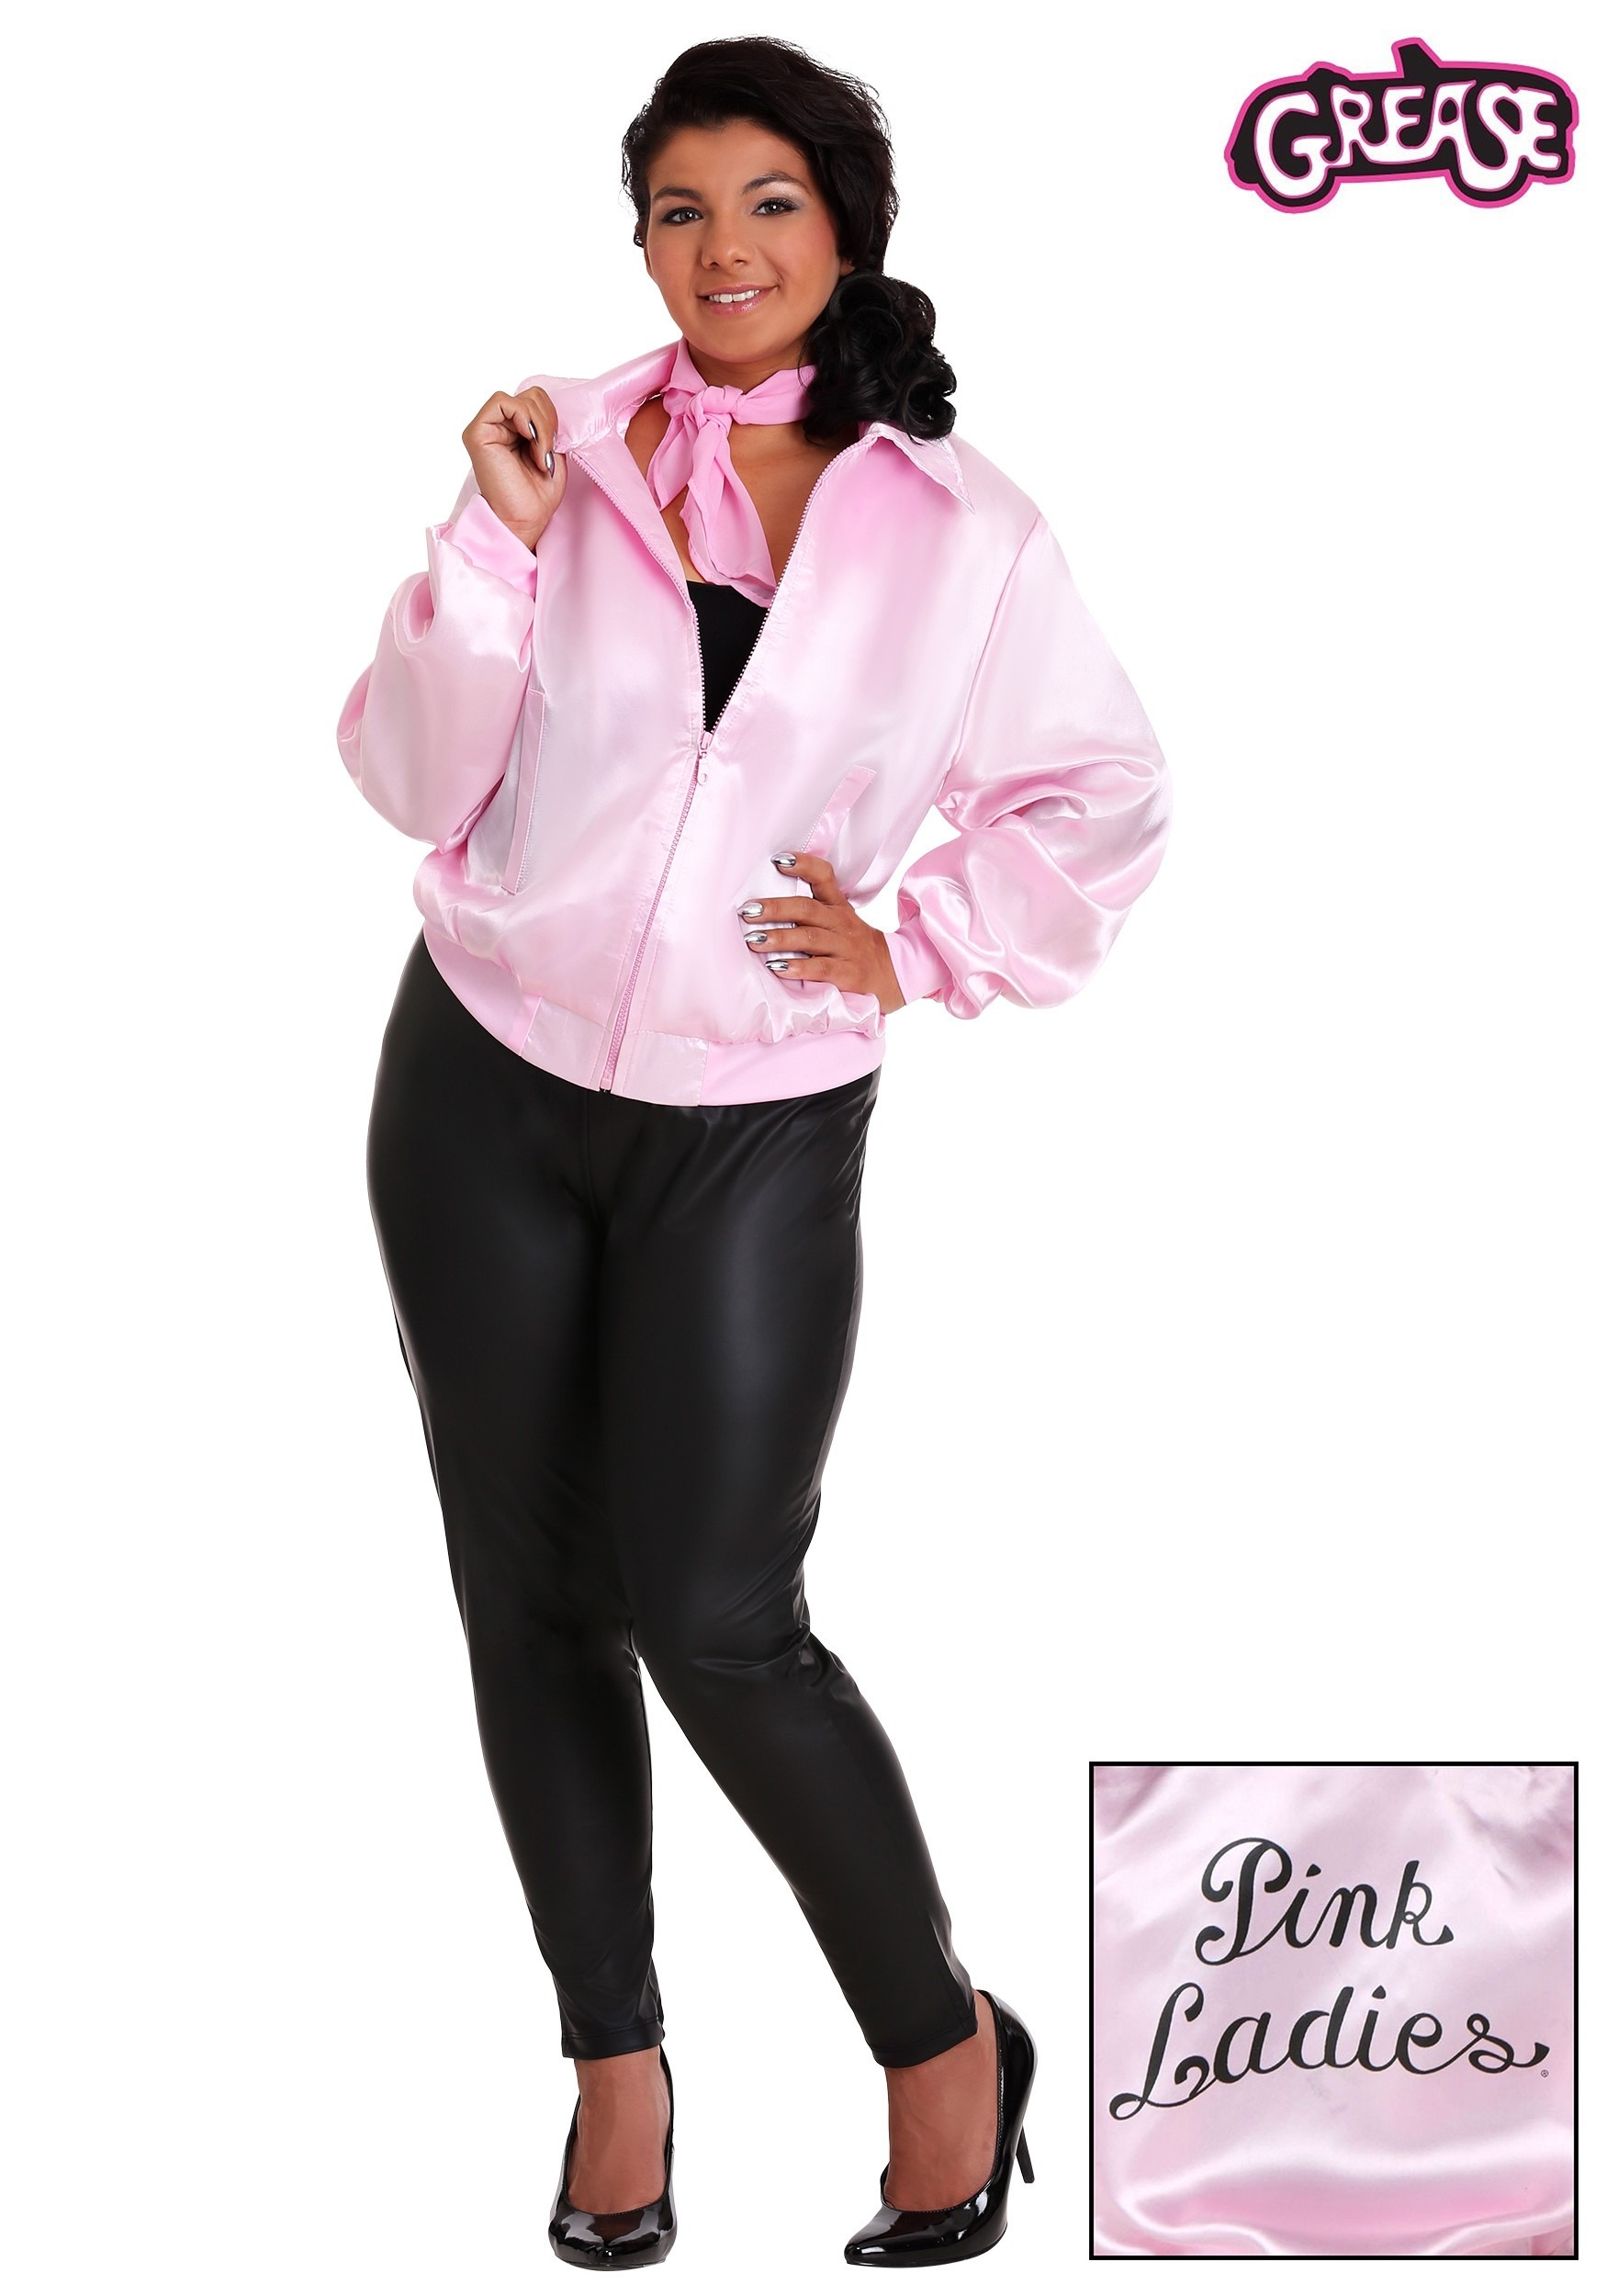 8e50fc52325 Plus Size Grease Pink Ladies Costume Jacket 1X 2X 3X 4X 5X 6X 7X